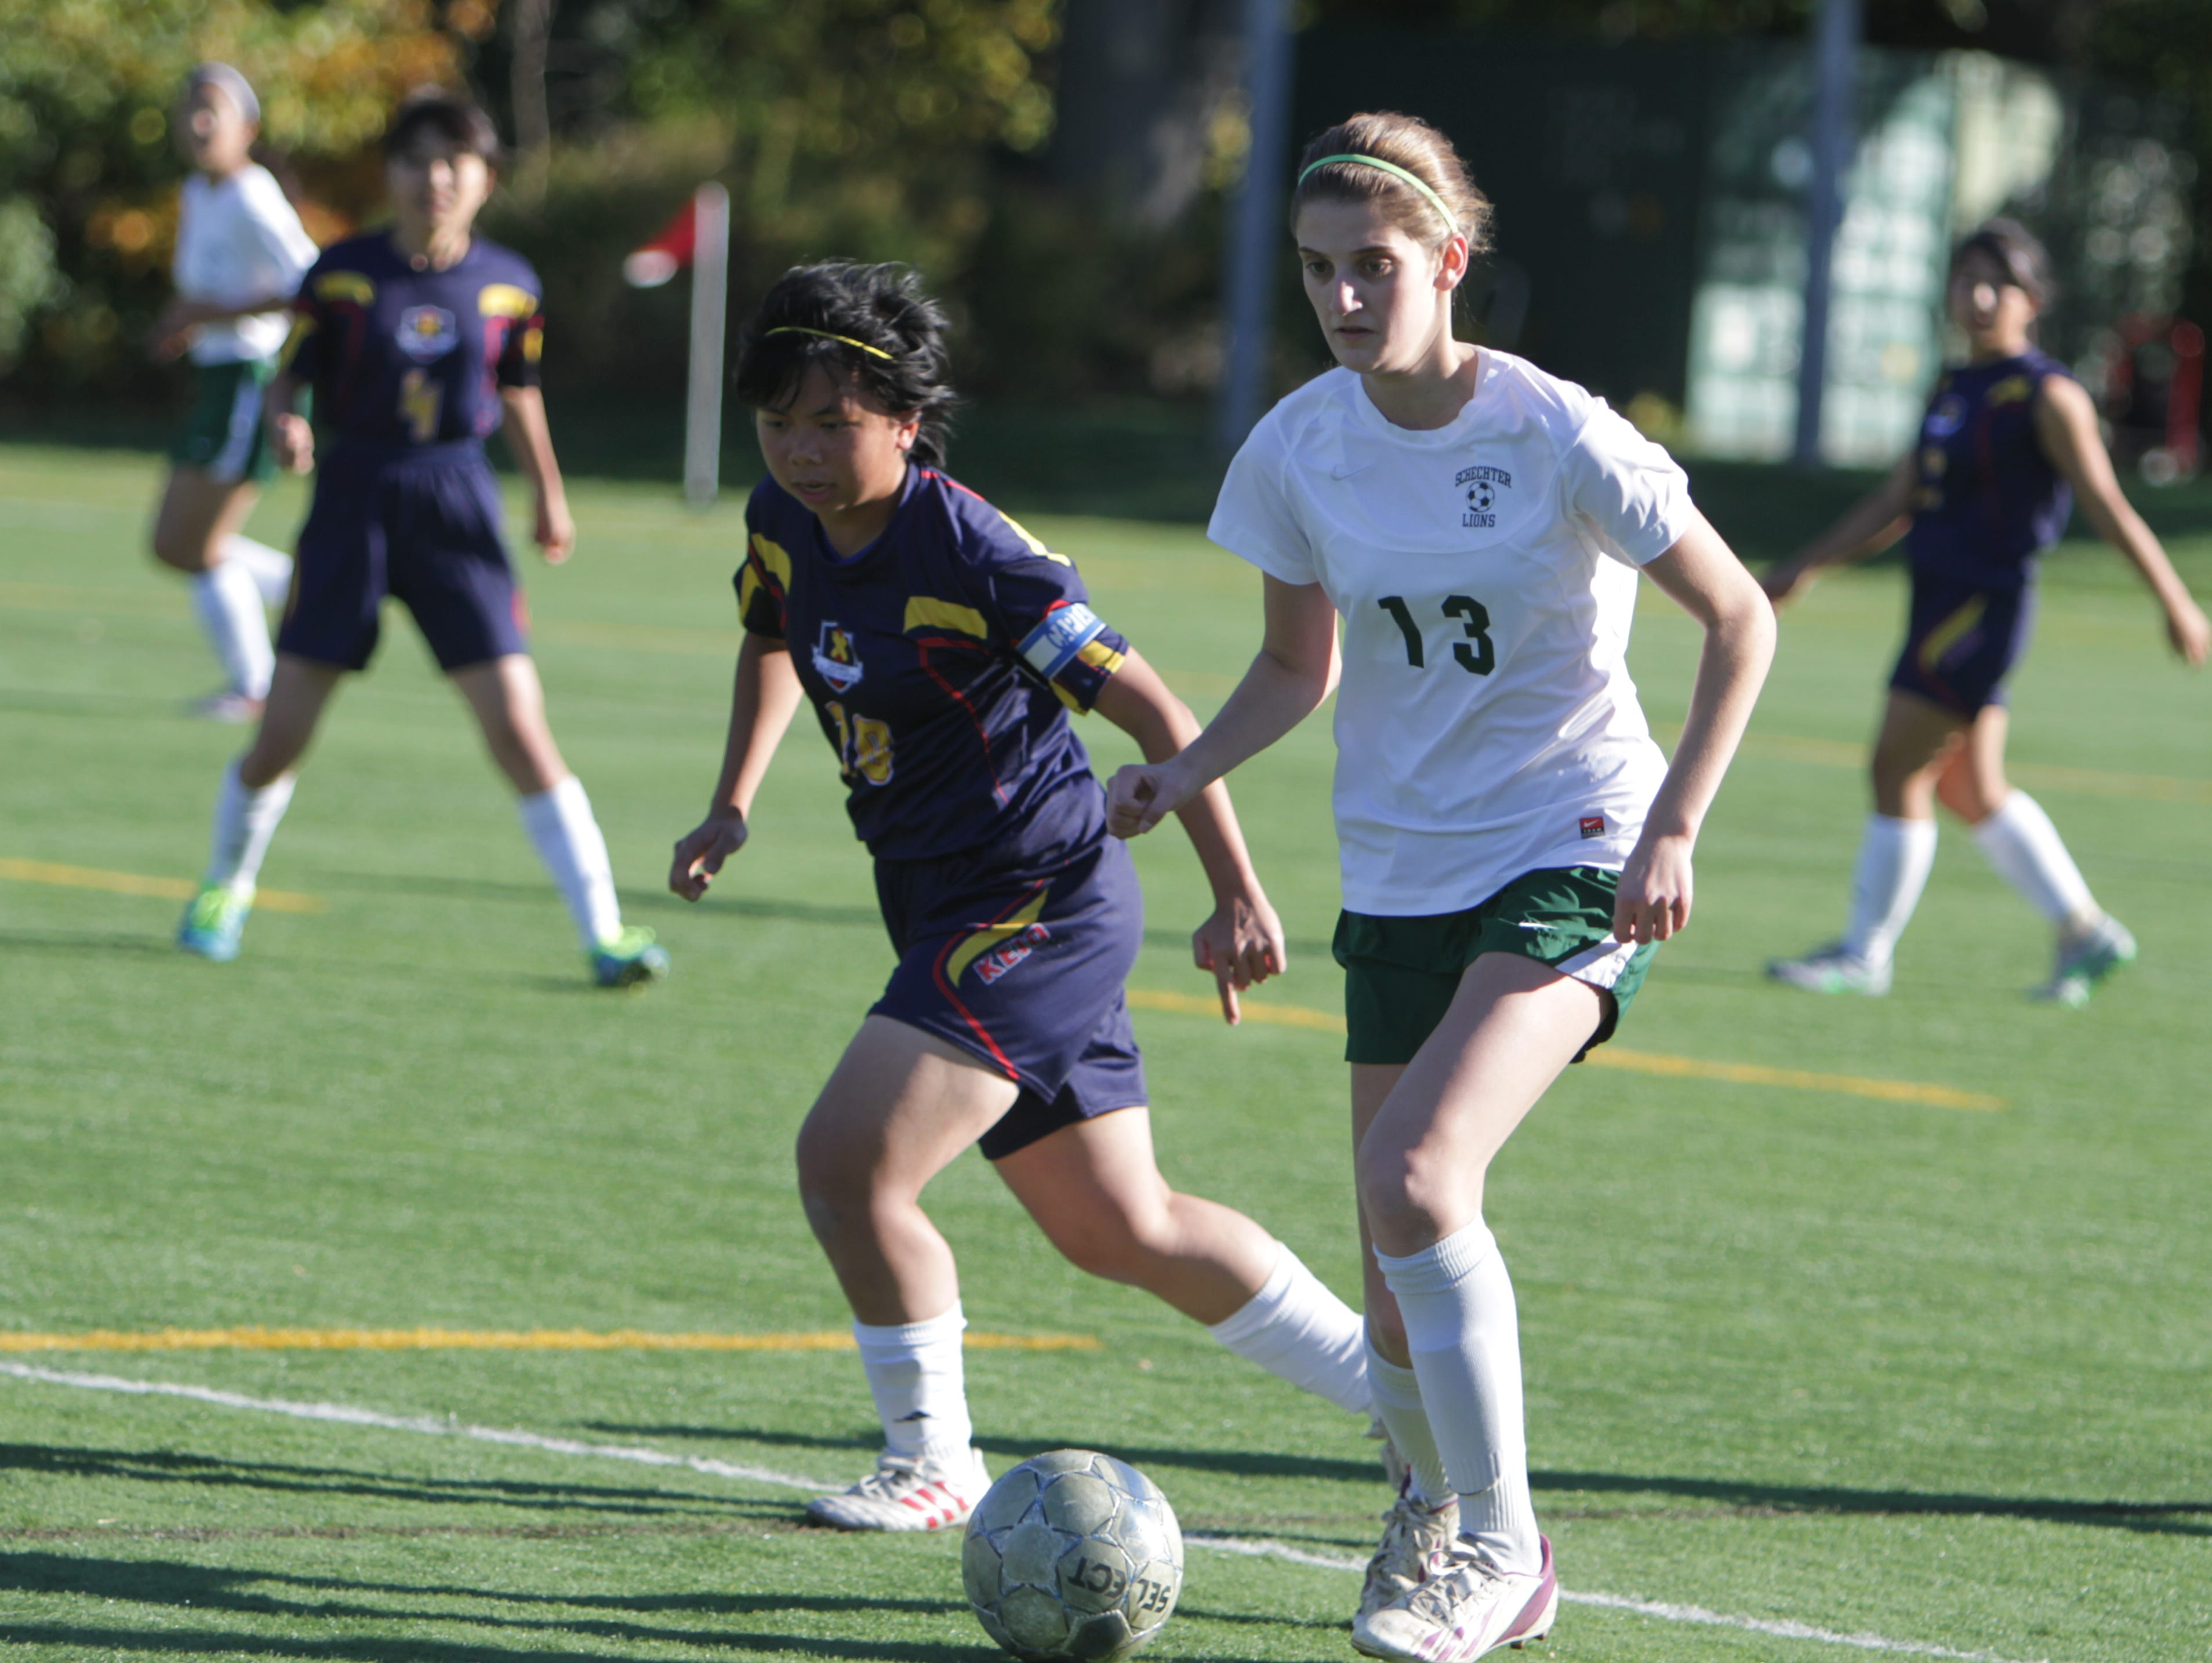 Solomon Schechter defeated Keio 9-2 in a Class C sectional quarterfinal game at Keio Academy, Purchase, on Monday, October 26th, 2015.